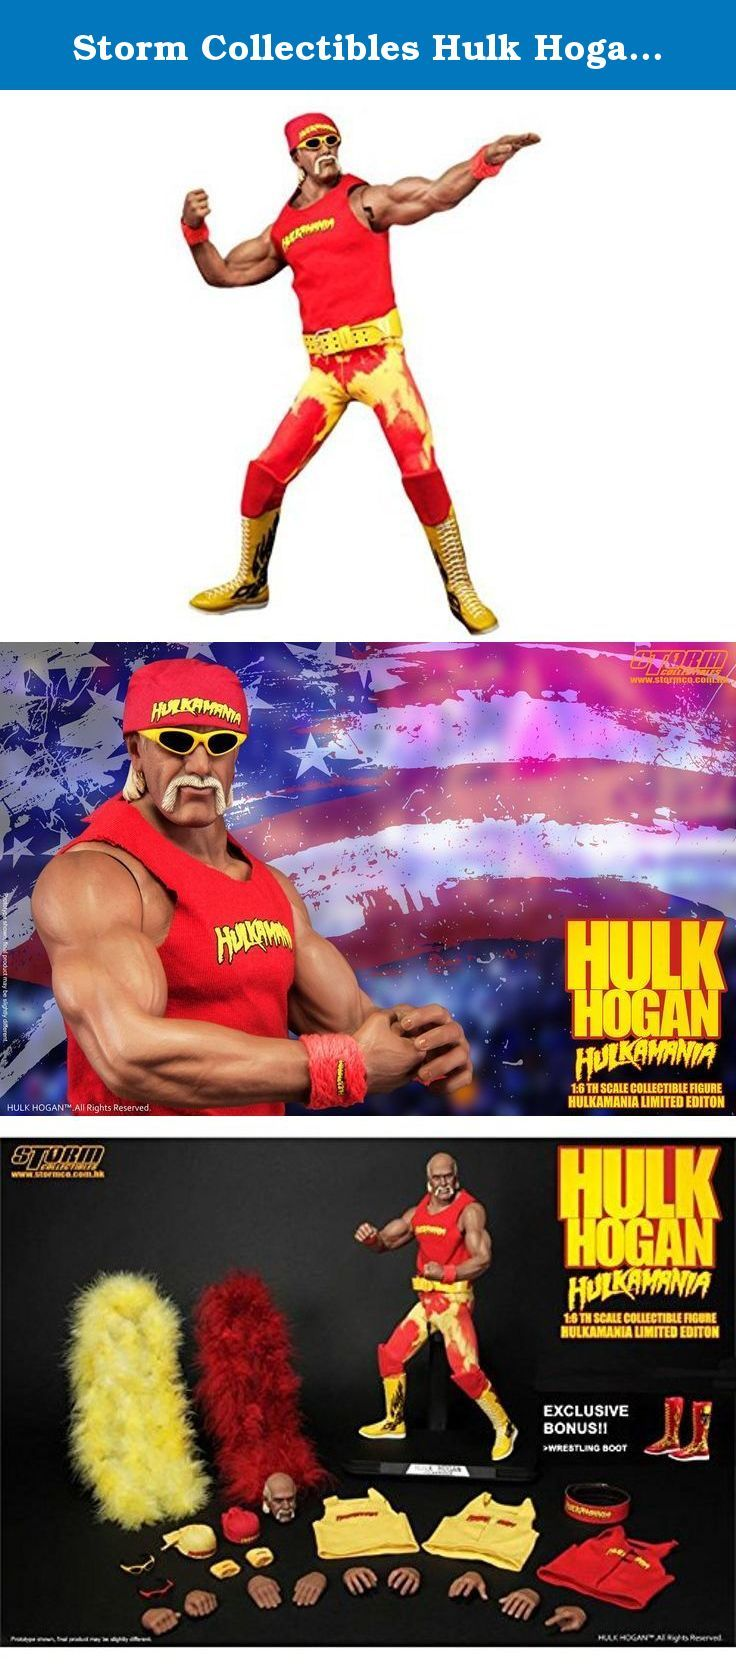 "Storm Collectibles Hulk Hogan ""Hulkamania"" 1/6th Scale Premium Figure. The greatest champion, most popular, most iconic wrestler and celebrity of all time, he is the true legend: Hulk Hogan, also known as Hulkamania, Hulkster, and Hollywood Hogan. He is the reason we watch wrestling, and his stage performance has brought the business to the next level. Hulkamania - the red and yellow - have created the most iconic fashion in wrestling entertainment history that no one will forget. Storm..."